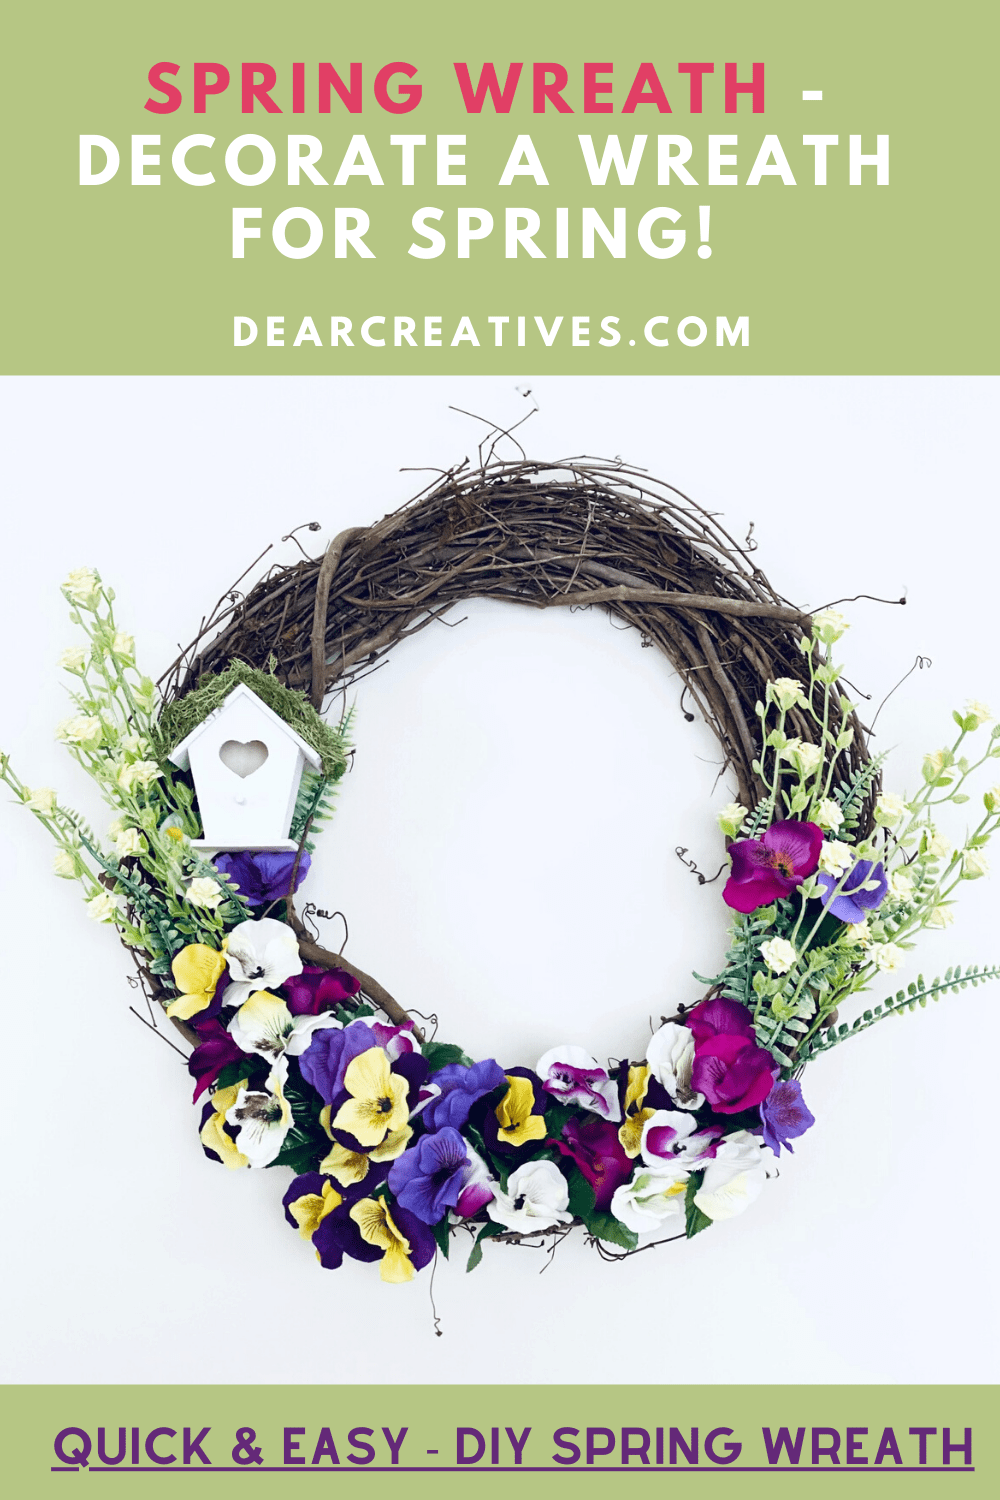 DIY Spring Wreath (Quick & Easy!)